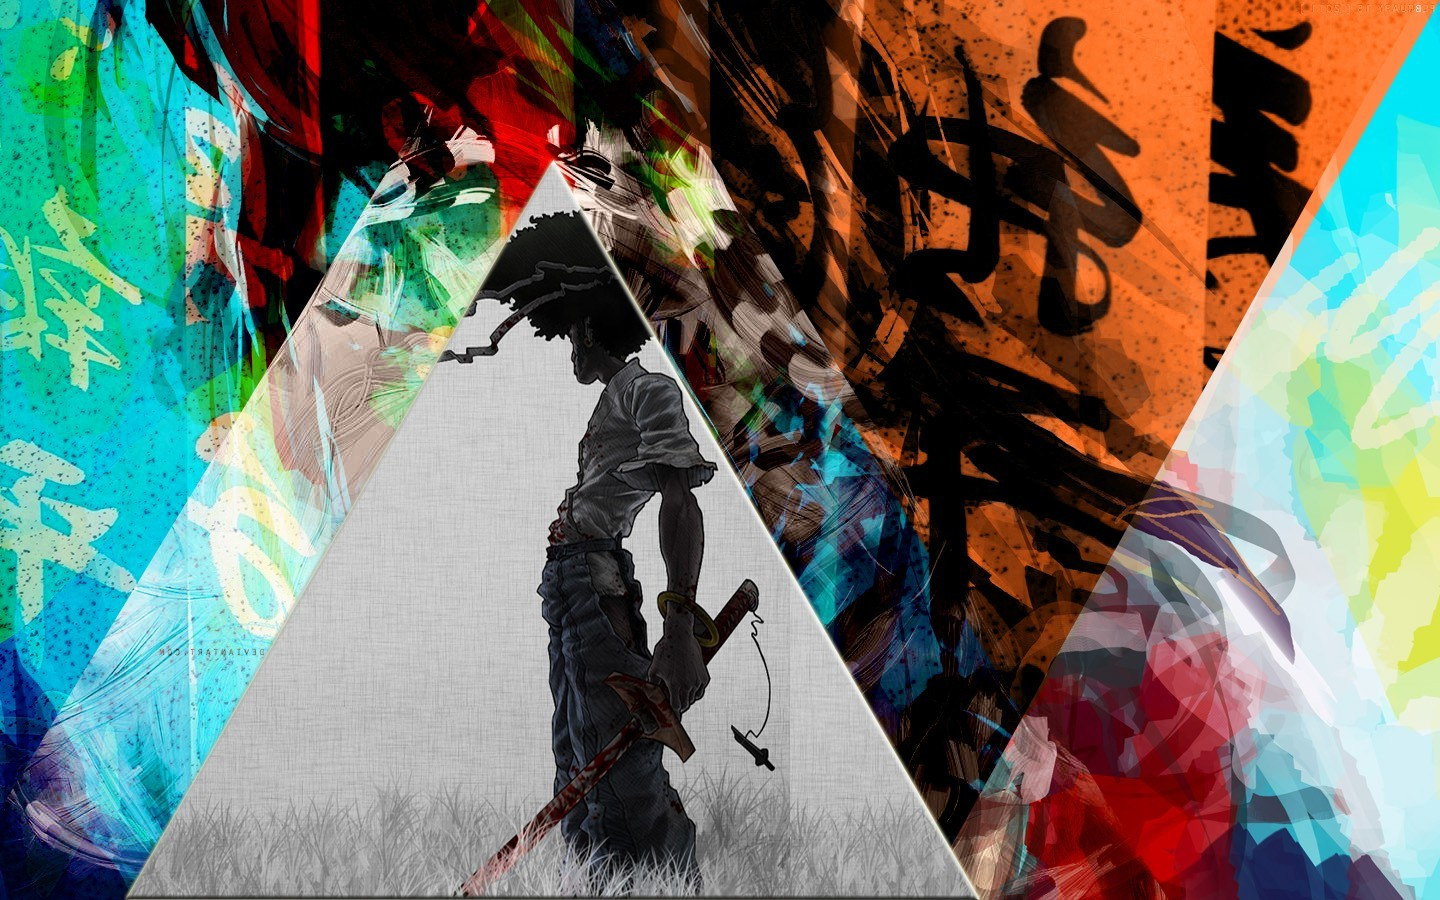 Cute Baby Wallpaper Download Full Hd Afro Samurai Colorful Chinese Triangle Mixed Martial